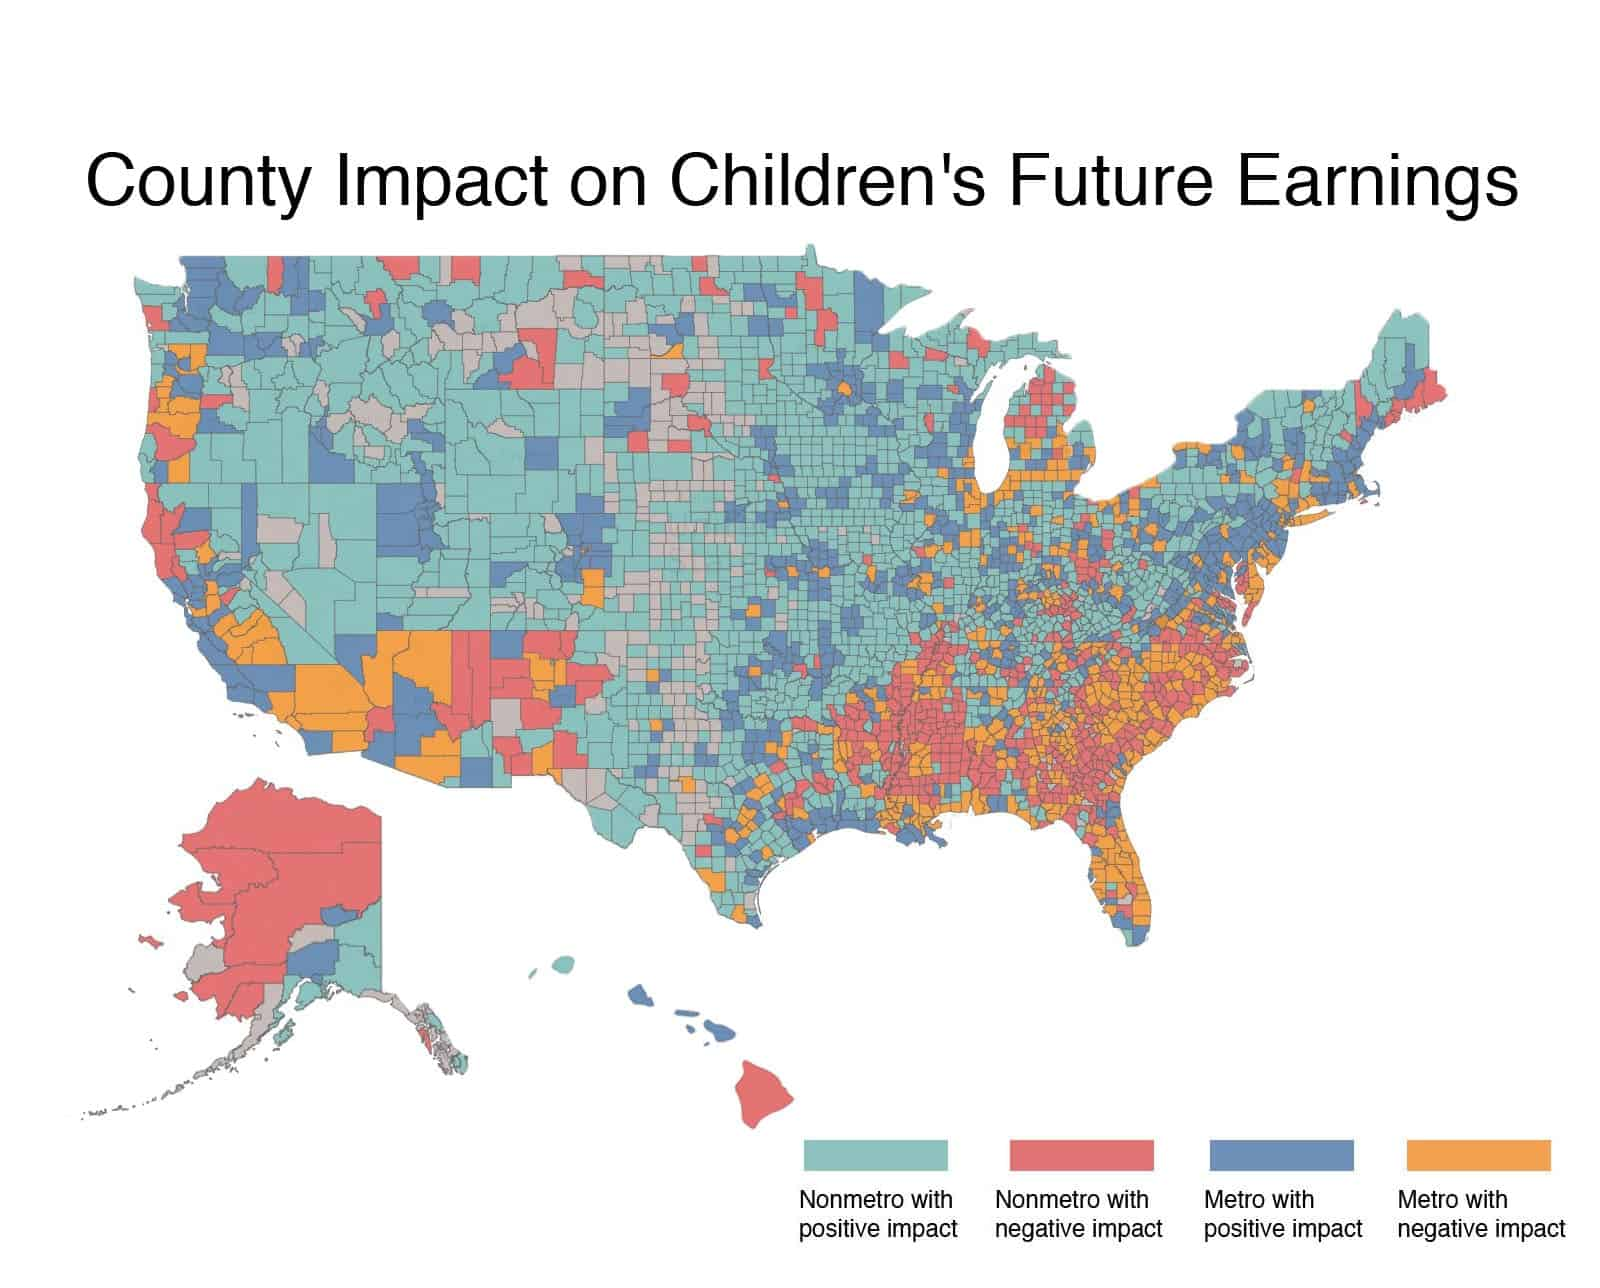 's Impact on FuturLoe Income of Poor Children map Overall03